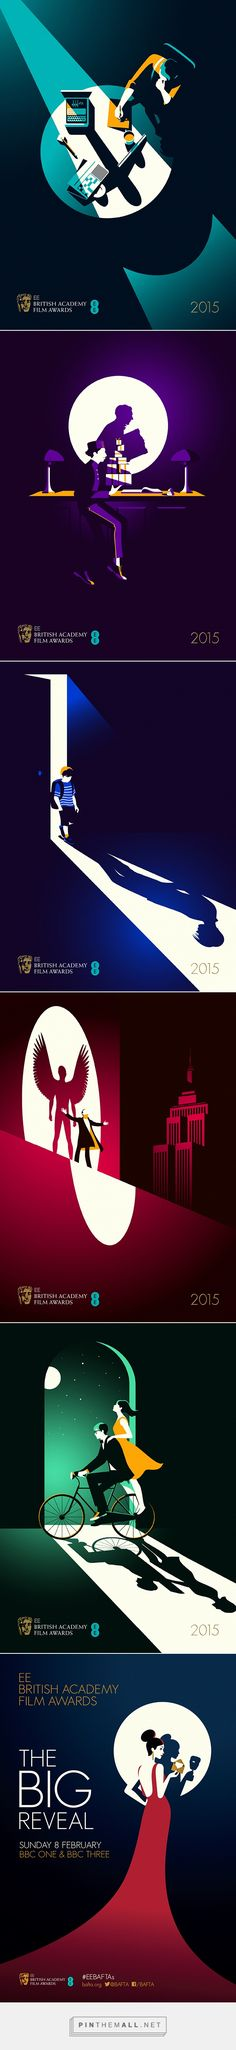 Malika Favre's terrific film noir-inspired posters for UK film's big night, the…